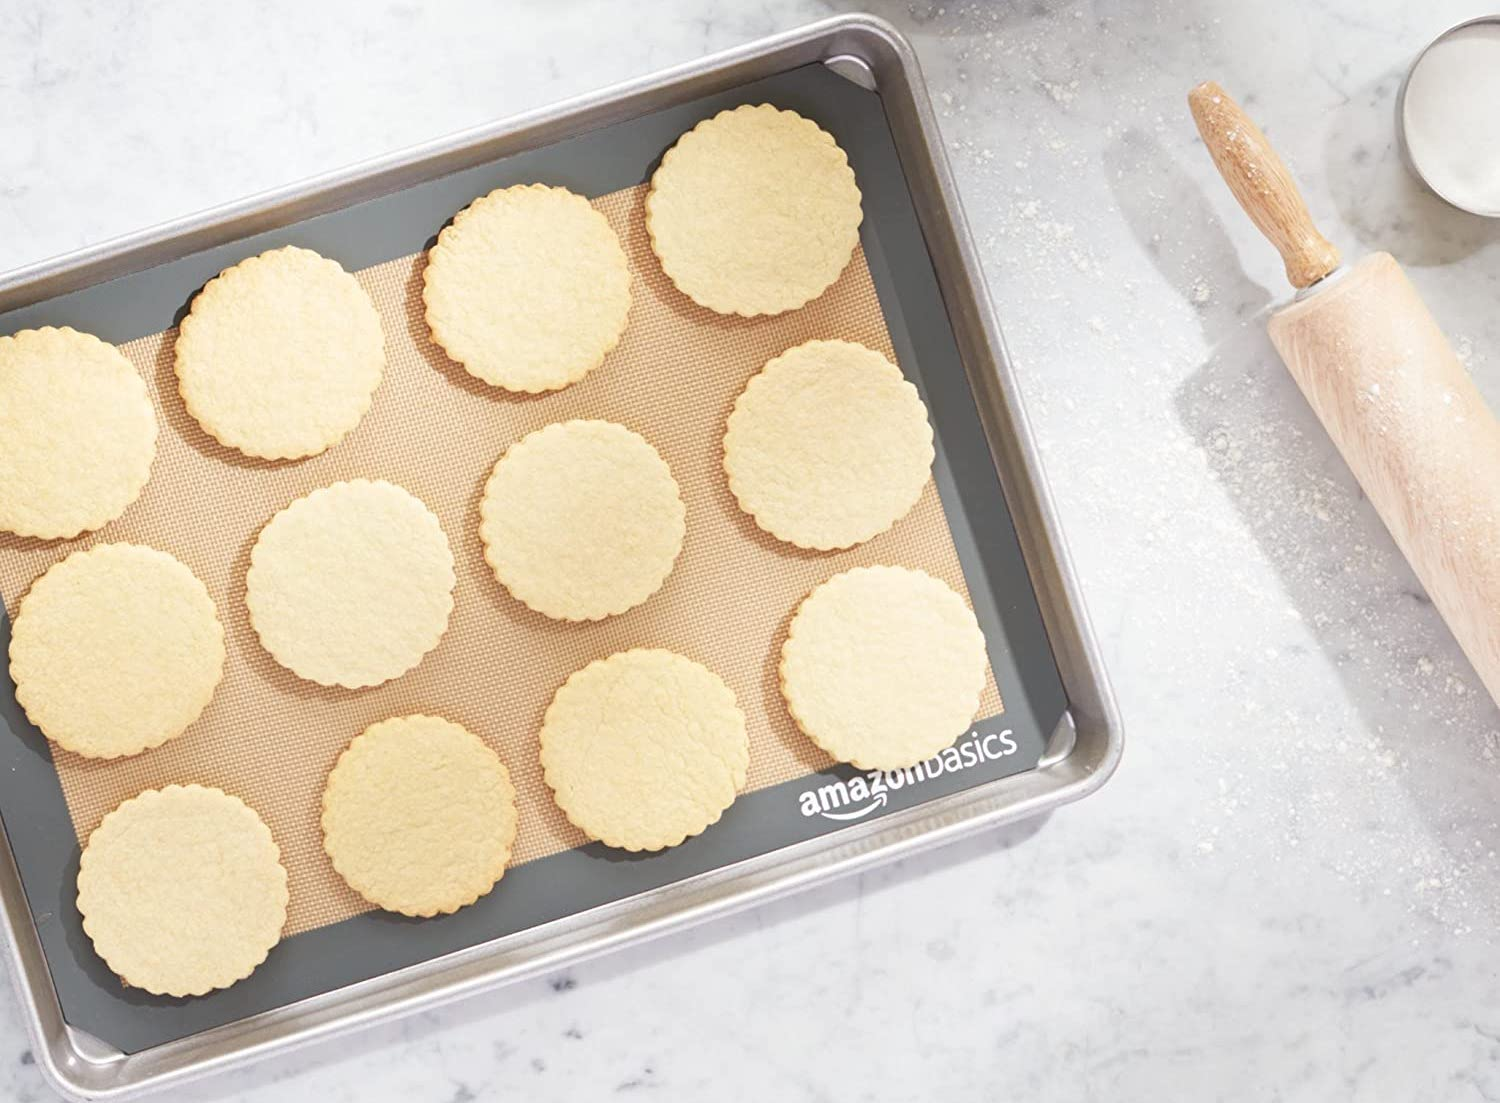 Cookies sitting on a silicone mat on a cookie sheet, with a rolling pin nearby